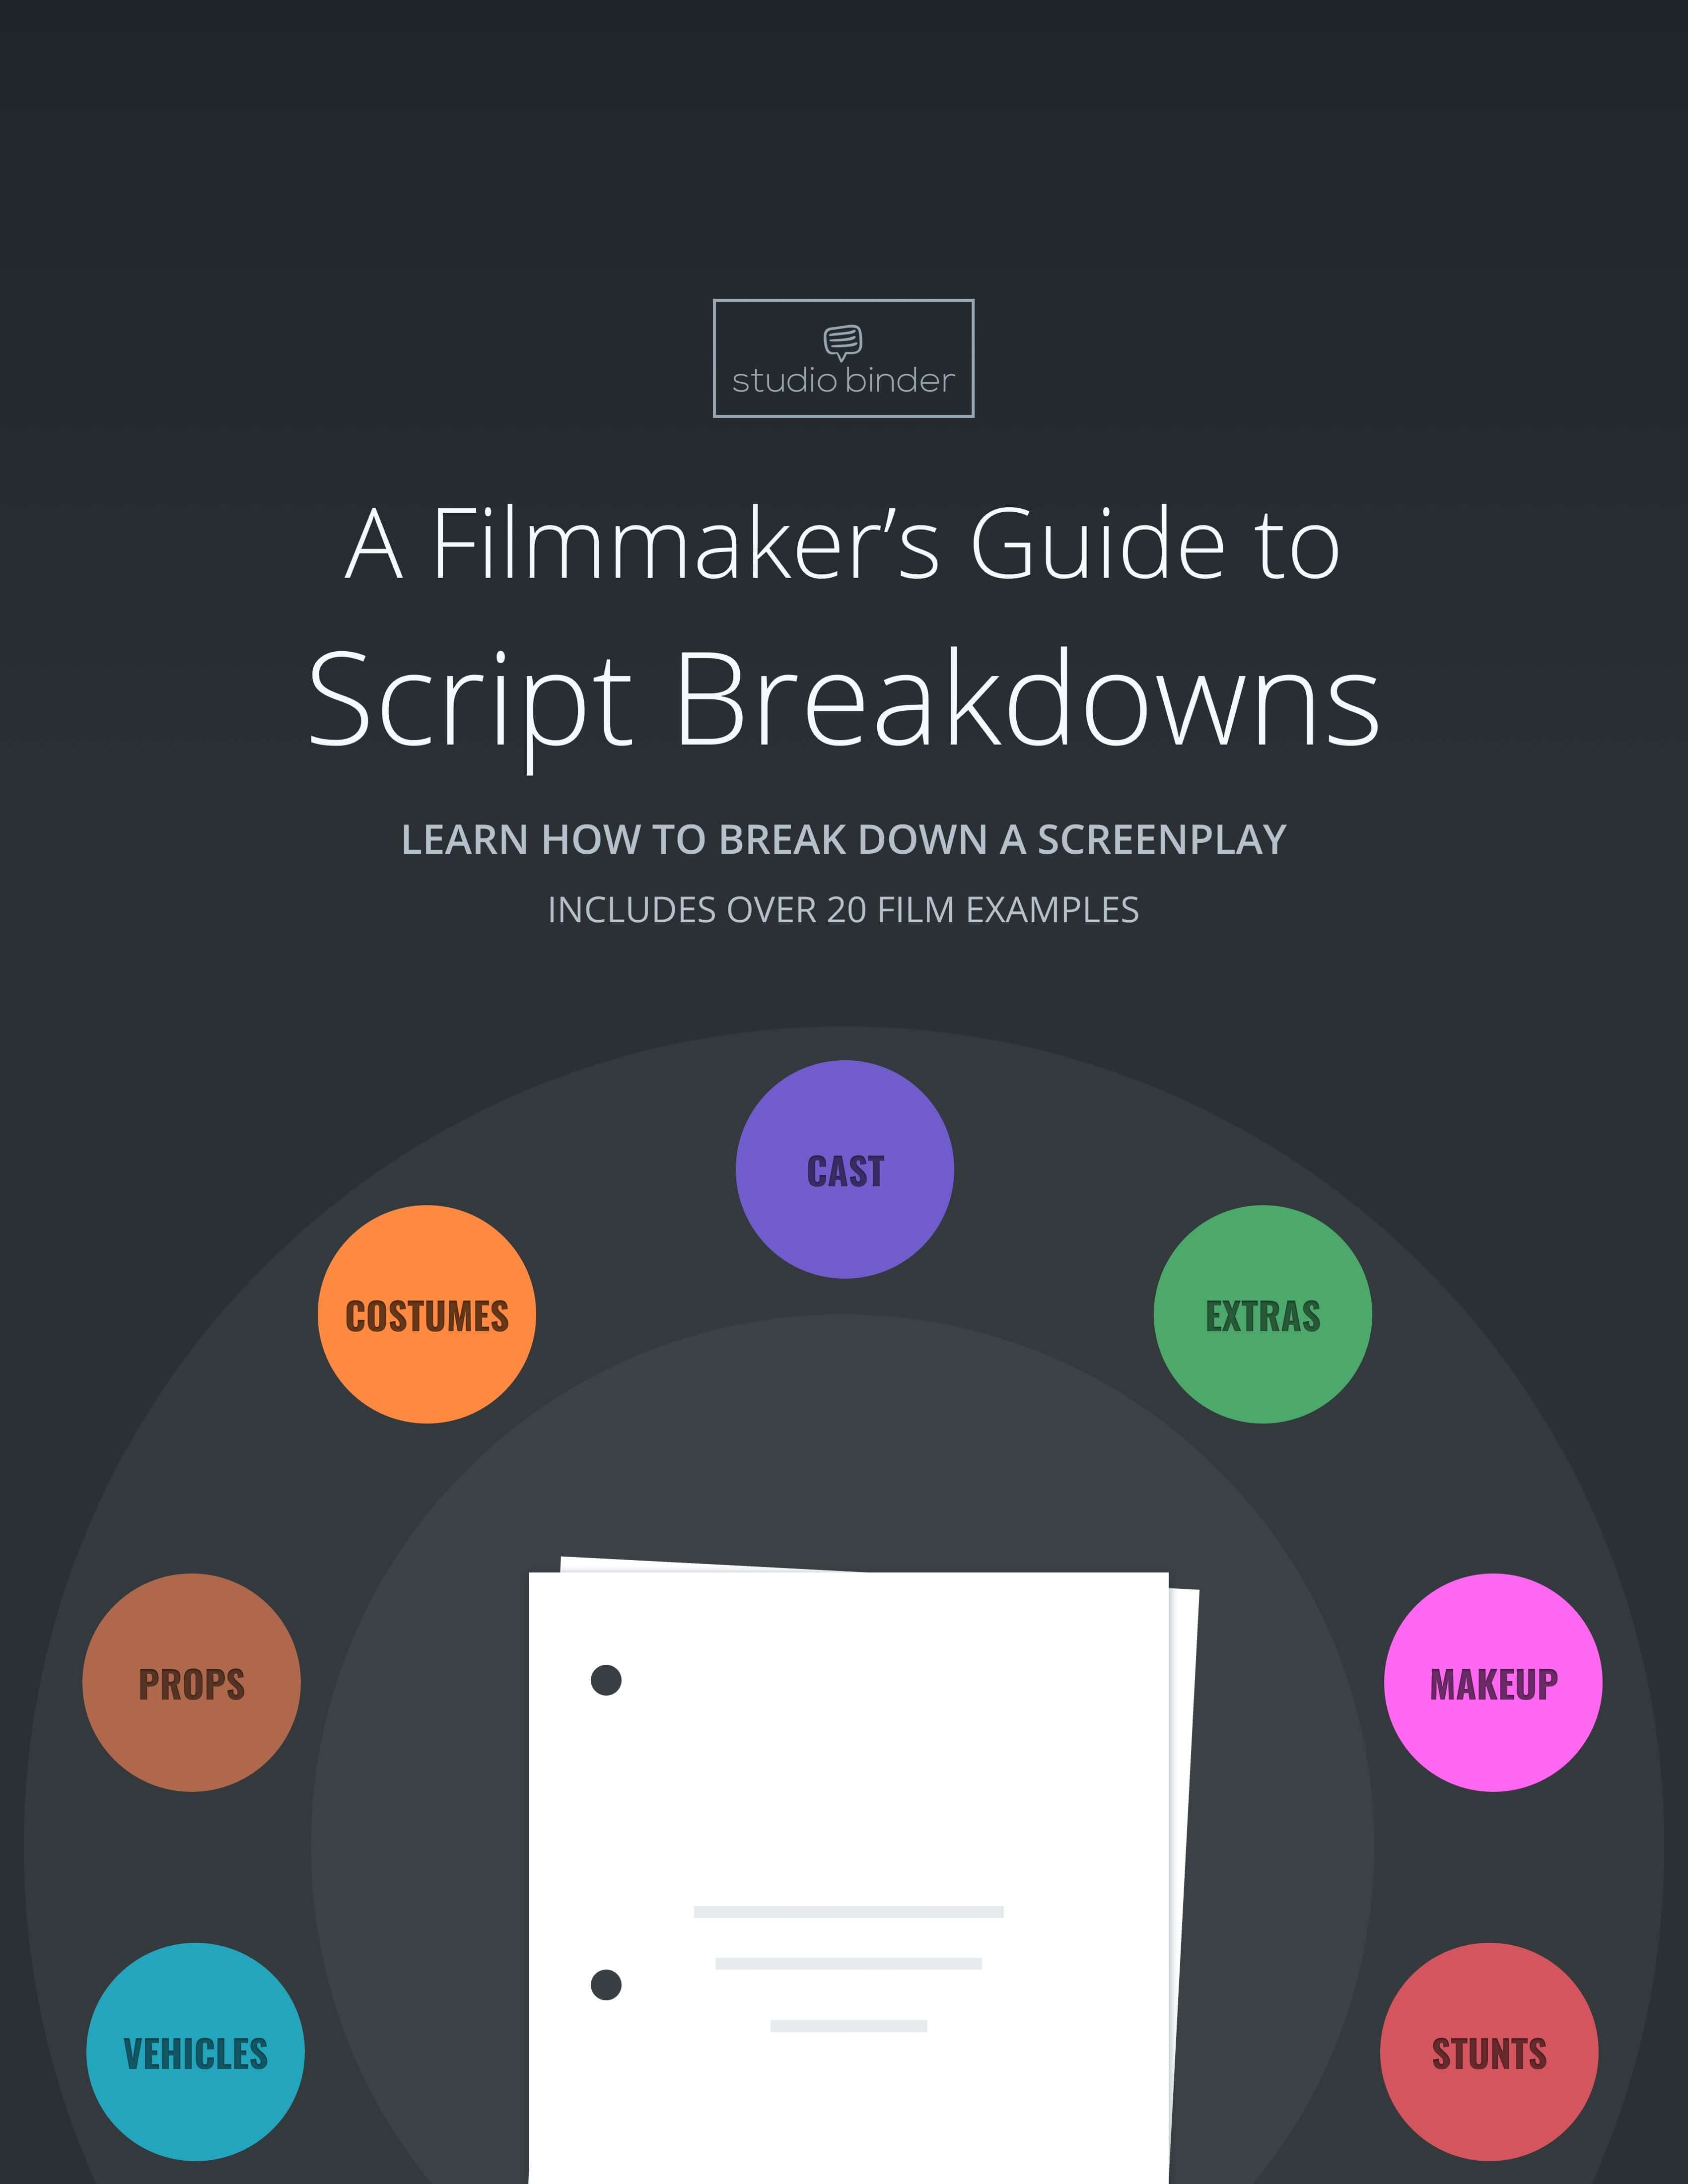 A Filmmaker's Guide to Script Breakdowns (Free E-Book)